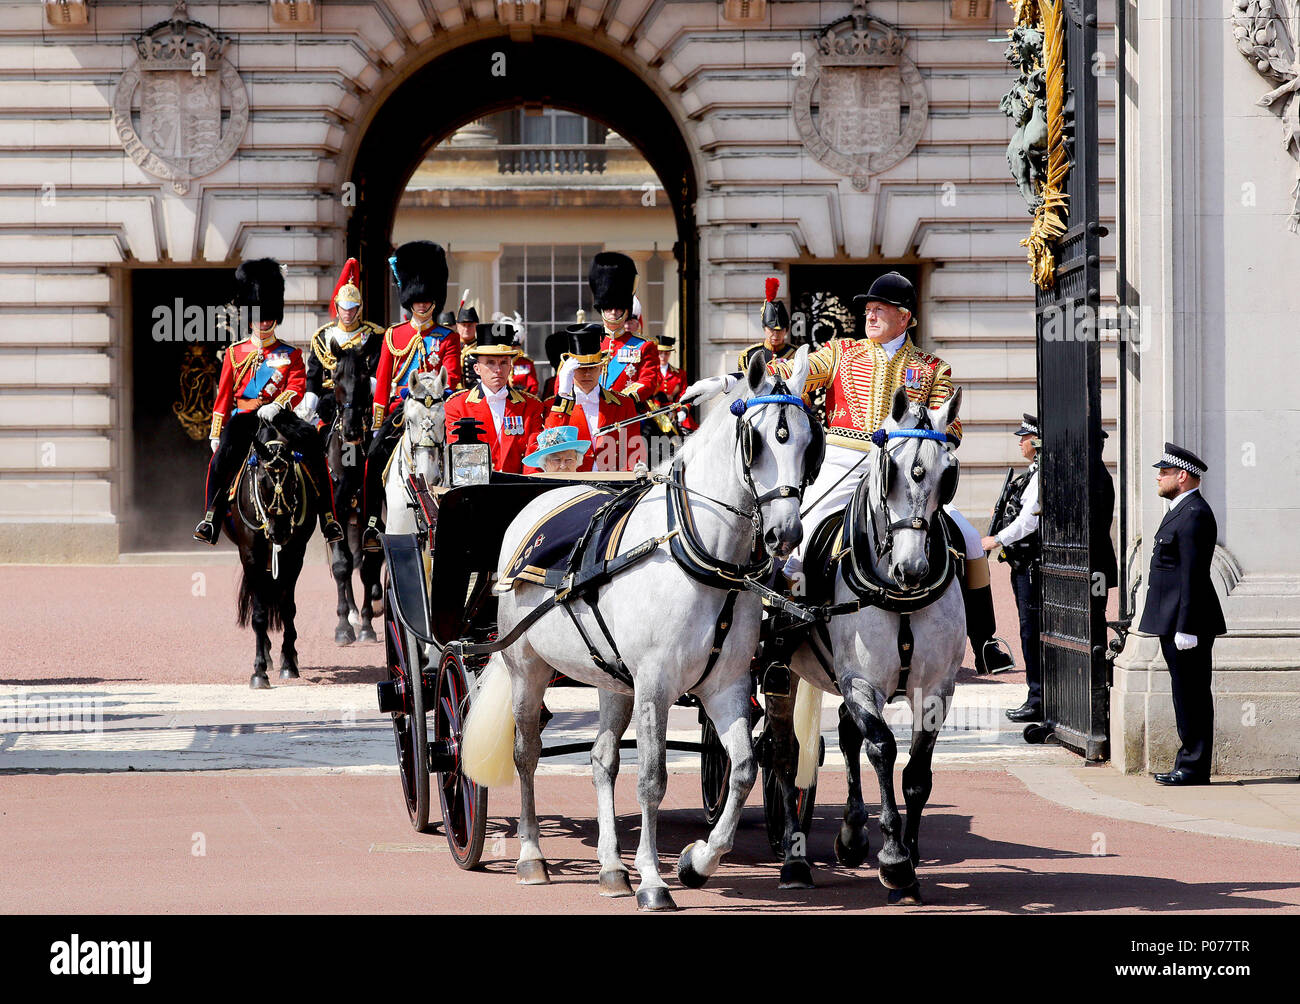 London, UK. 09th June, 2018. Queen Elizabeth II leave at Buckingham Palace in London, on June 09, 2018, to attend Trooping the colour, the Queens birthday parade Photo : Albert Nieboer/Netherlands OUT/Point de Vue OUT - NO WIRE SERVICE - Credit: Albert Nieboer/RoyalPress/dpa/Alamy Live News Stock Photo